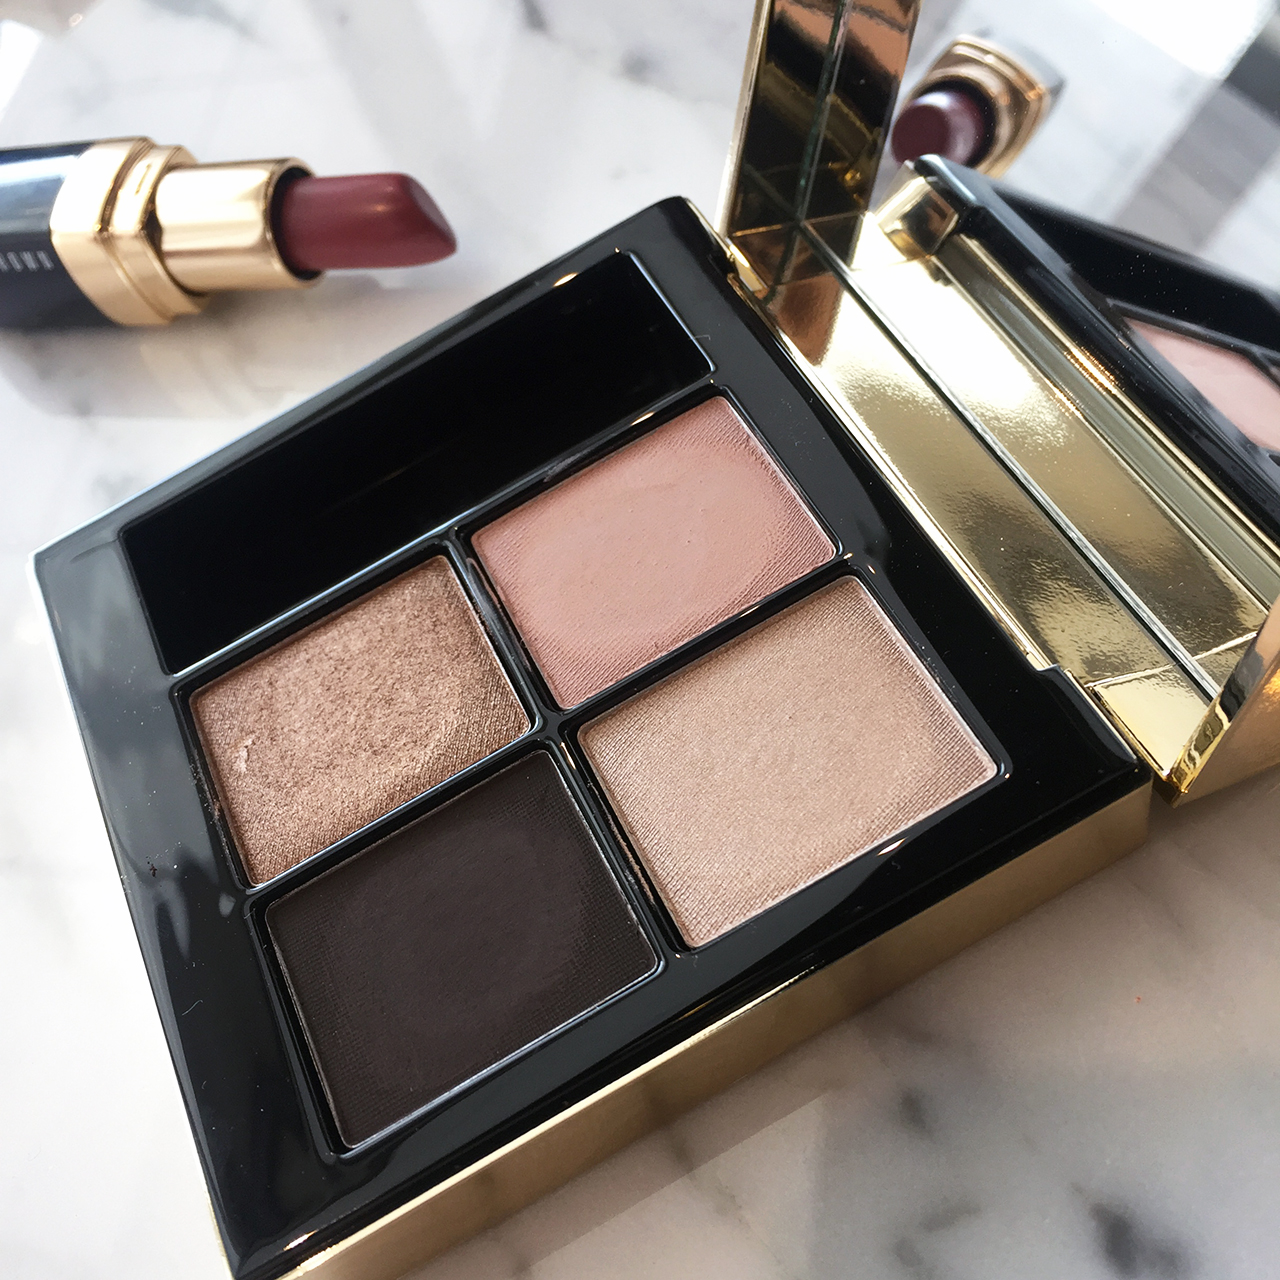 Bobbi Brown Party To Go Eye & Lip Palette for Holiday 2016